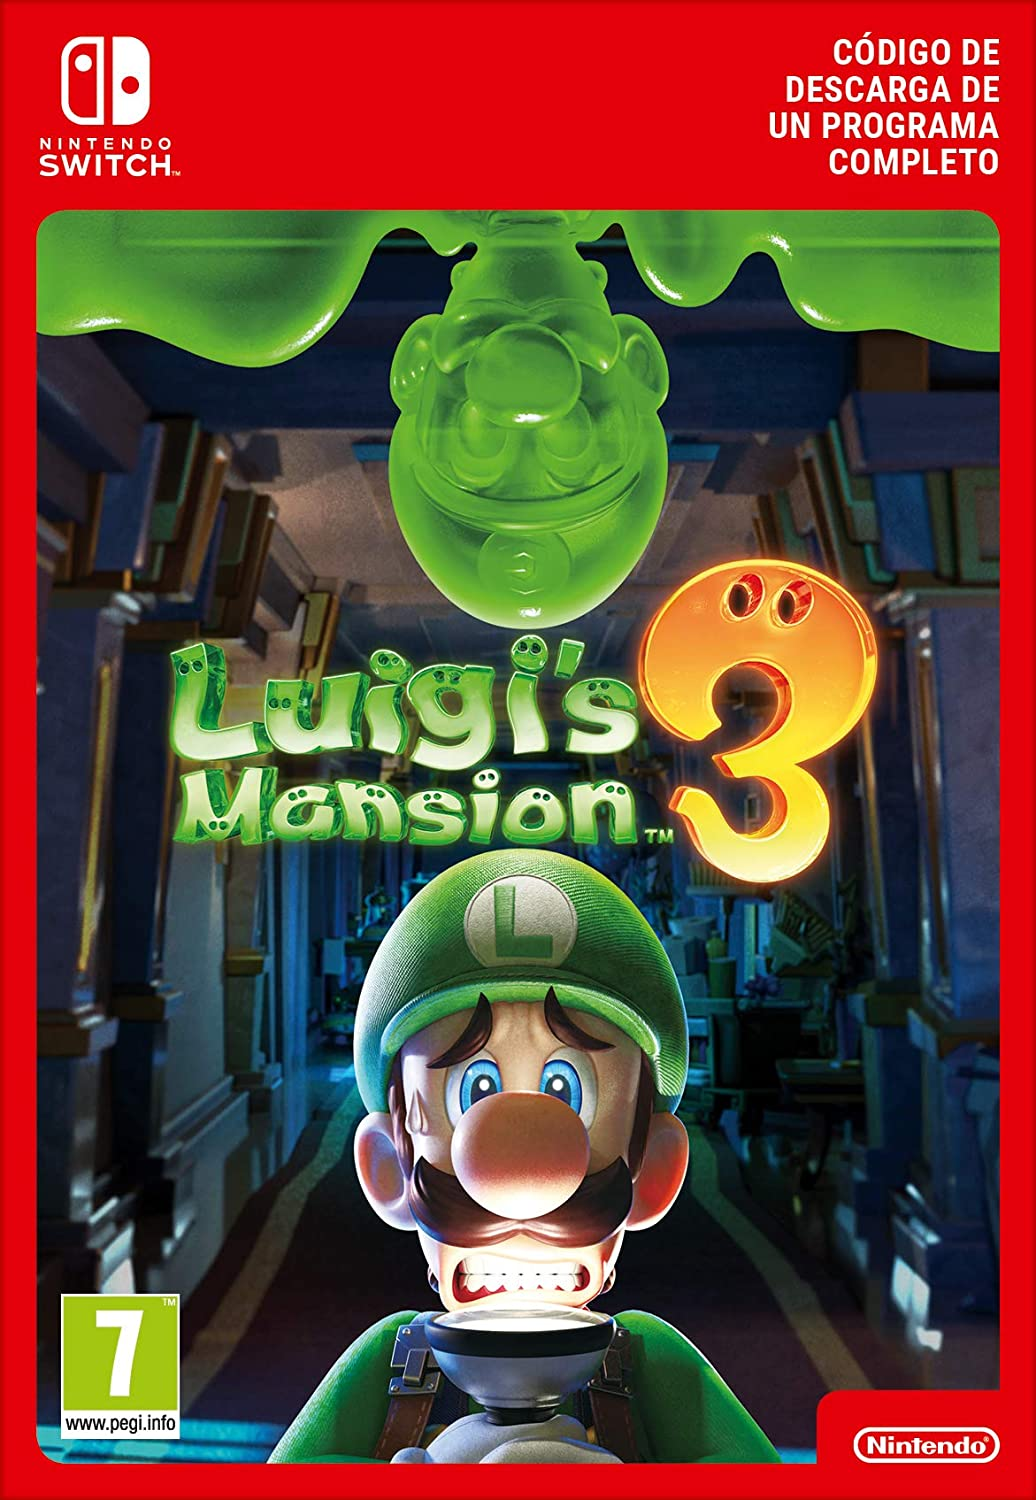 Luigis Mansion 3 Standard | Nintendo Switch - Código de descarga ...